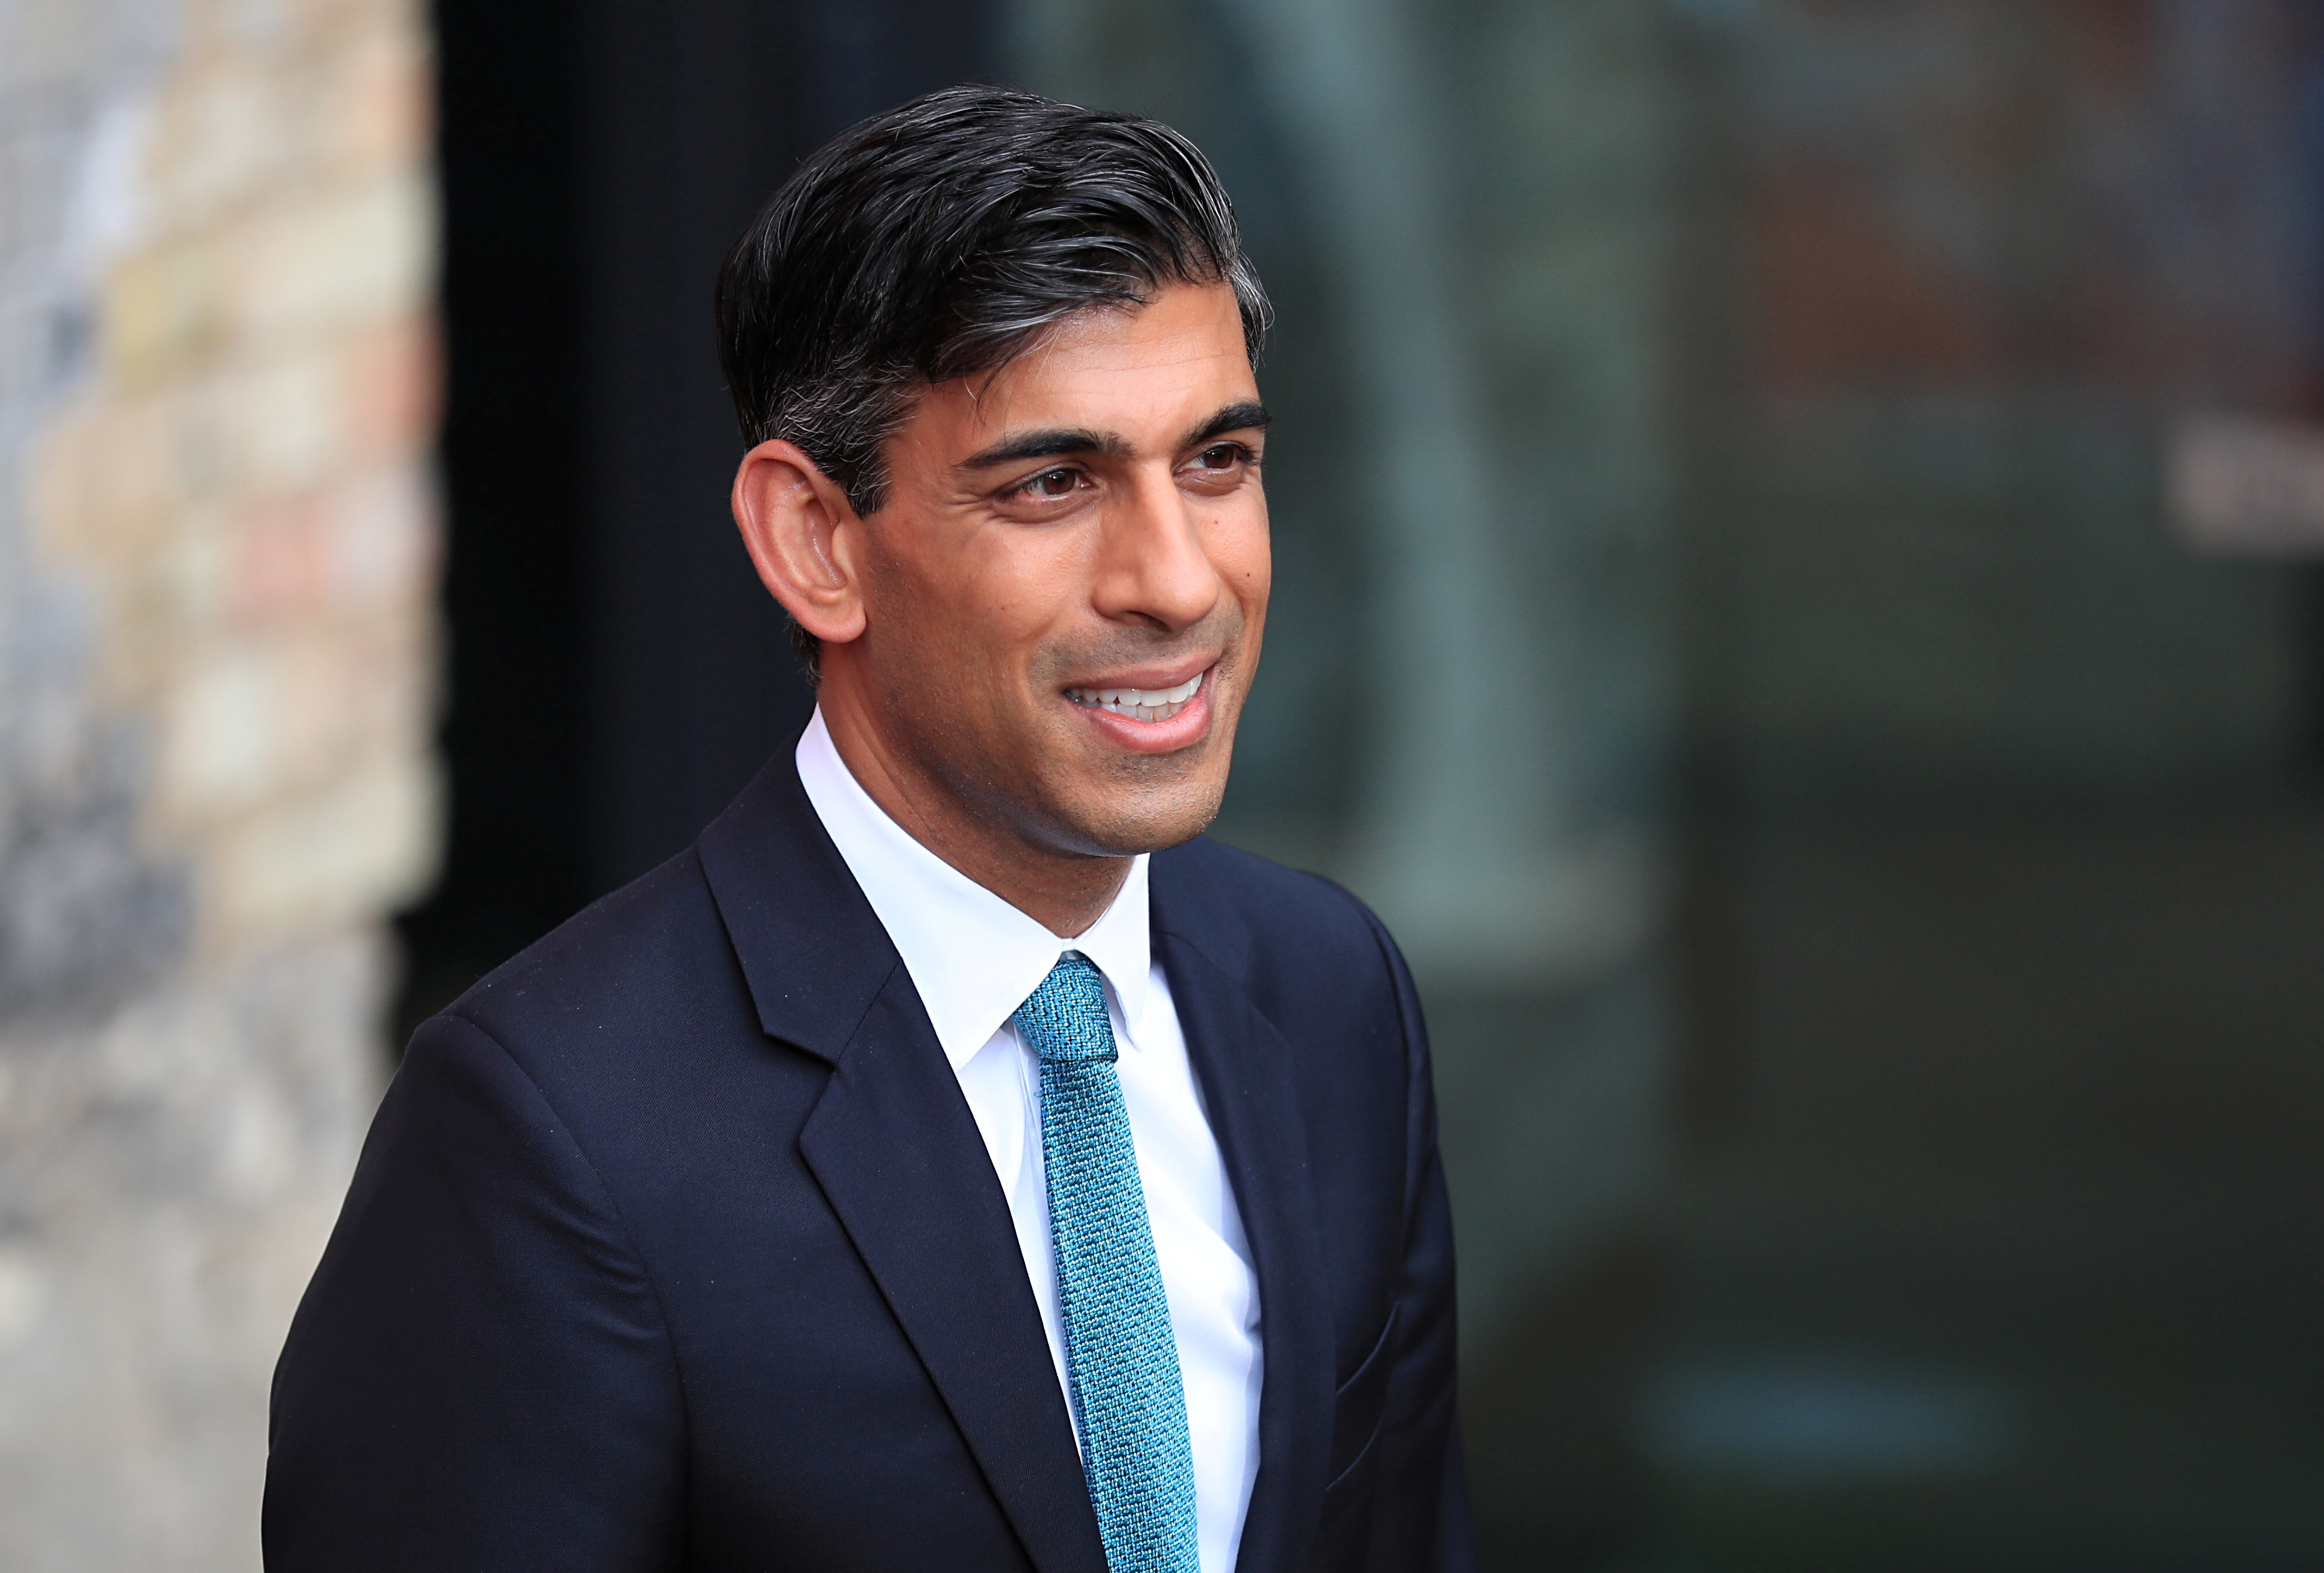 Britain's Chancellor of the Exchequer Rishi Sunak arrives at The Sun's Who Cares Wins Awards in London, Britain September 14, 2021. REUTERS/May James NO RESALES. NO ARCHIVES